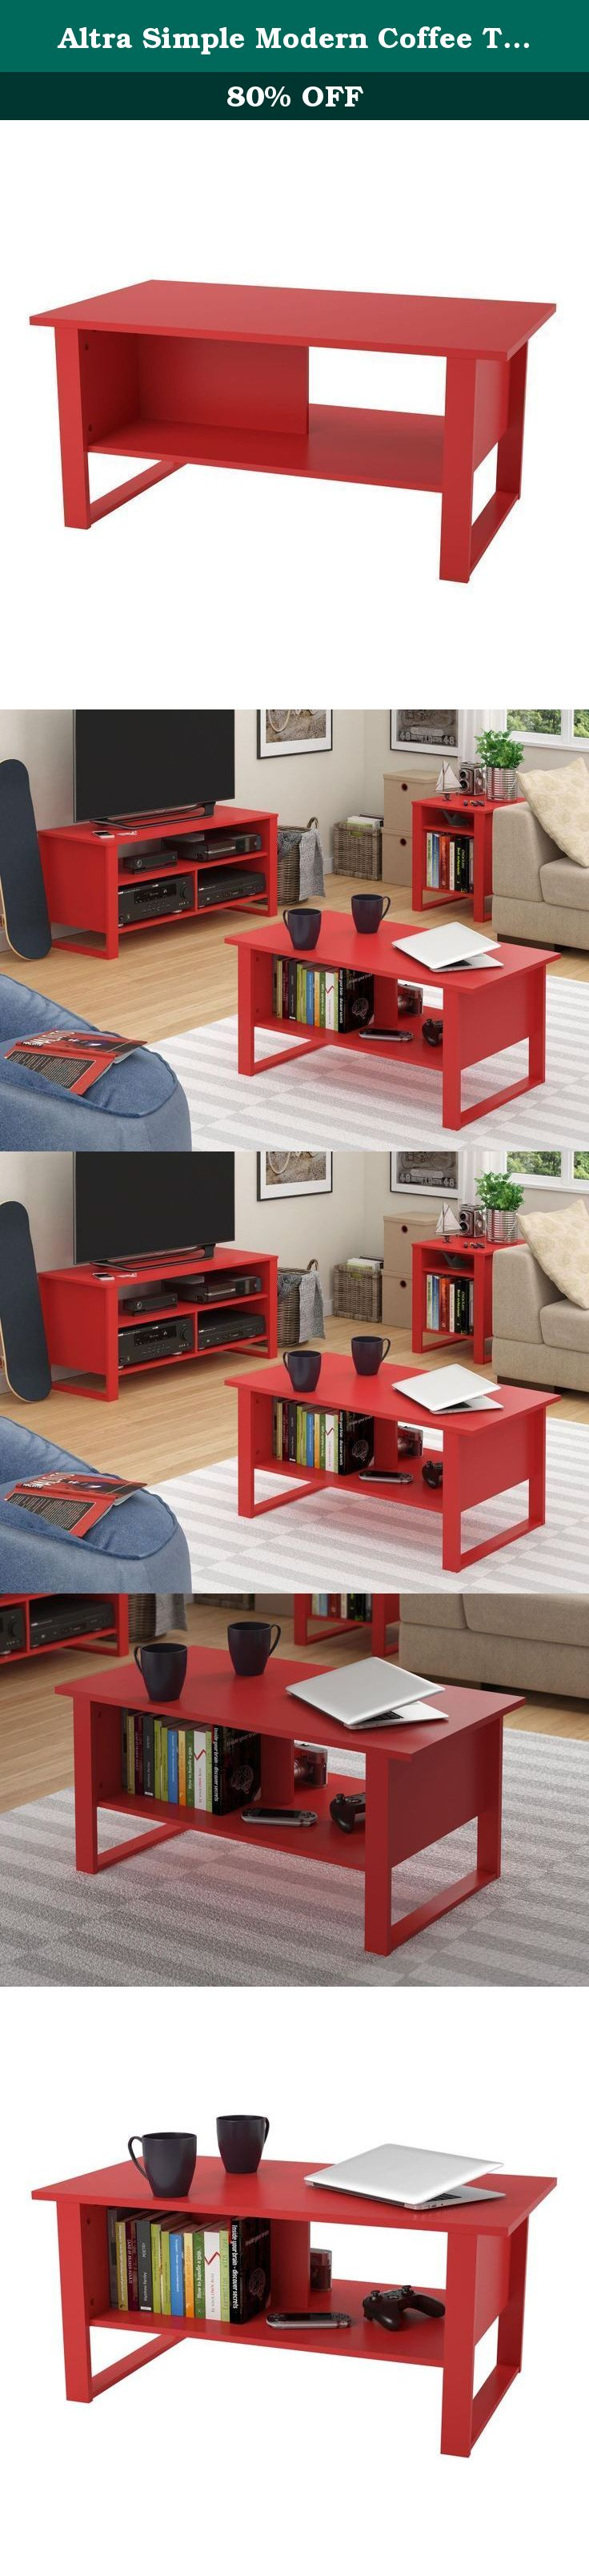 Altra Simple Modern Coffee Table in bright ruby red Make your